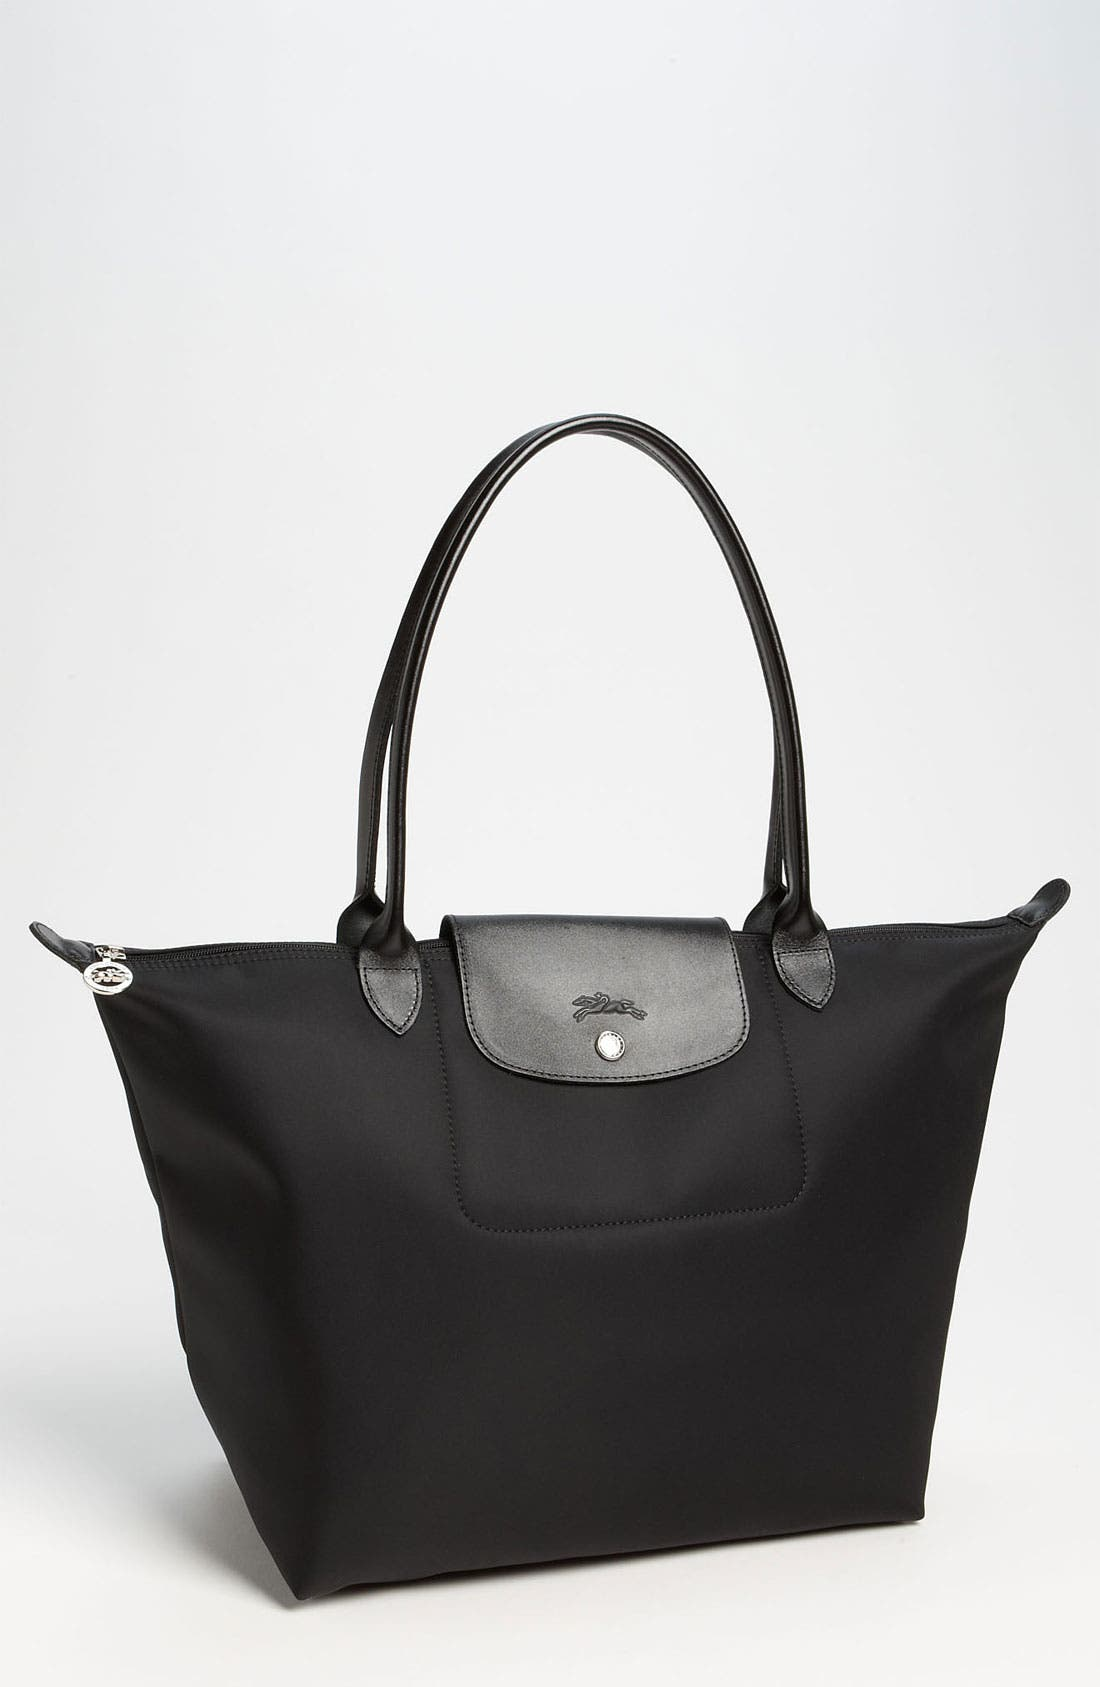 Alternate Image 1 Selected - Longchamp 'Large Planetes' Tote